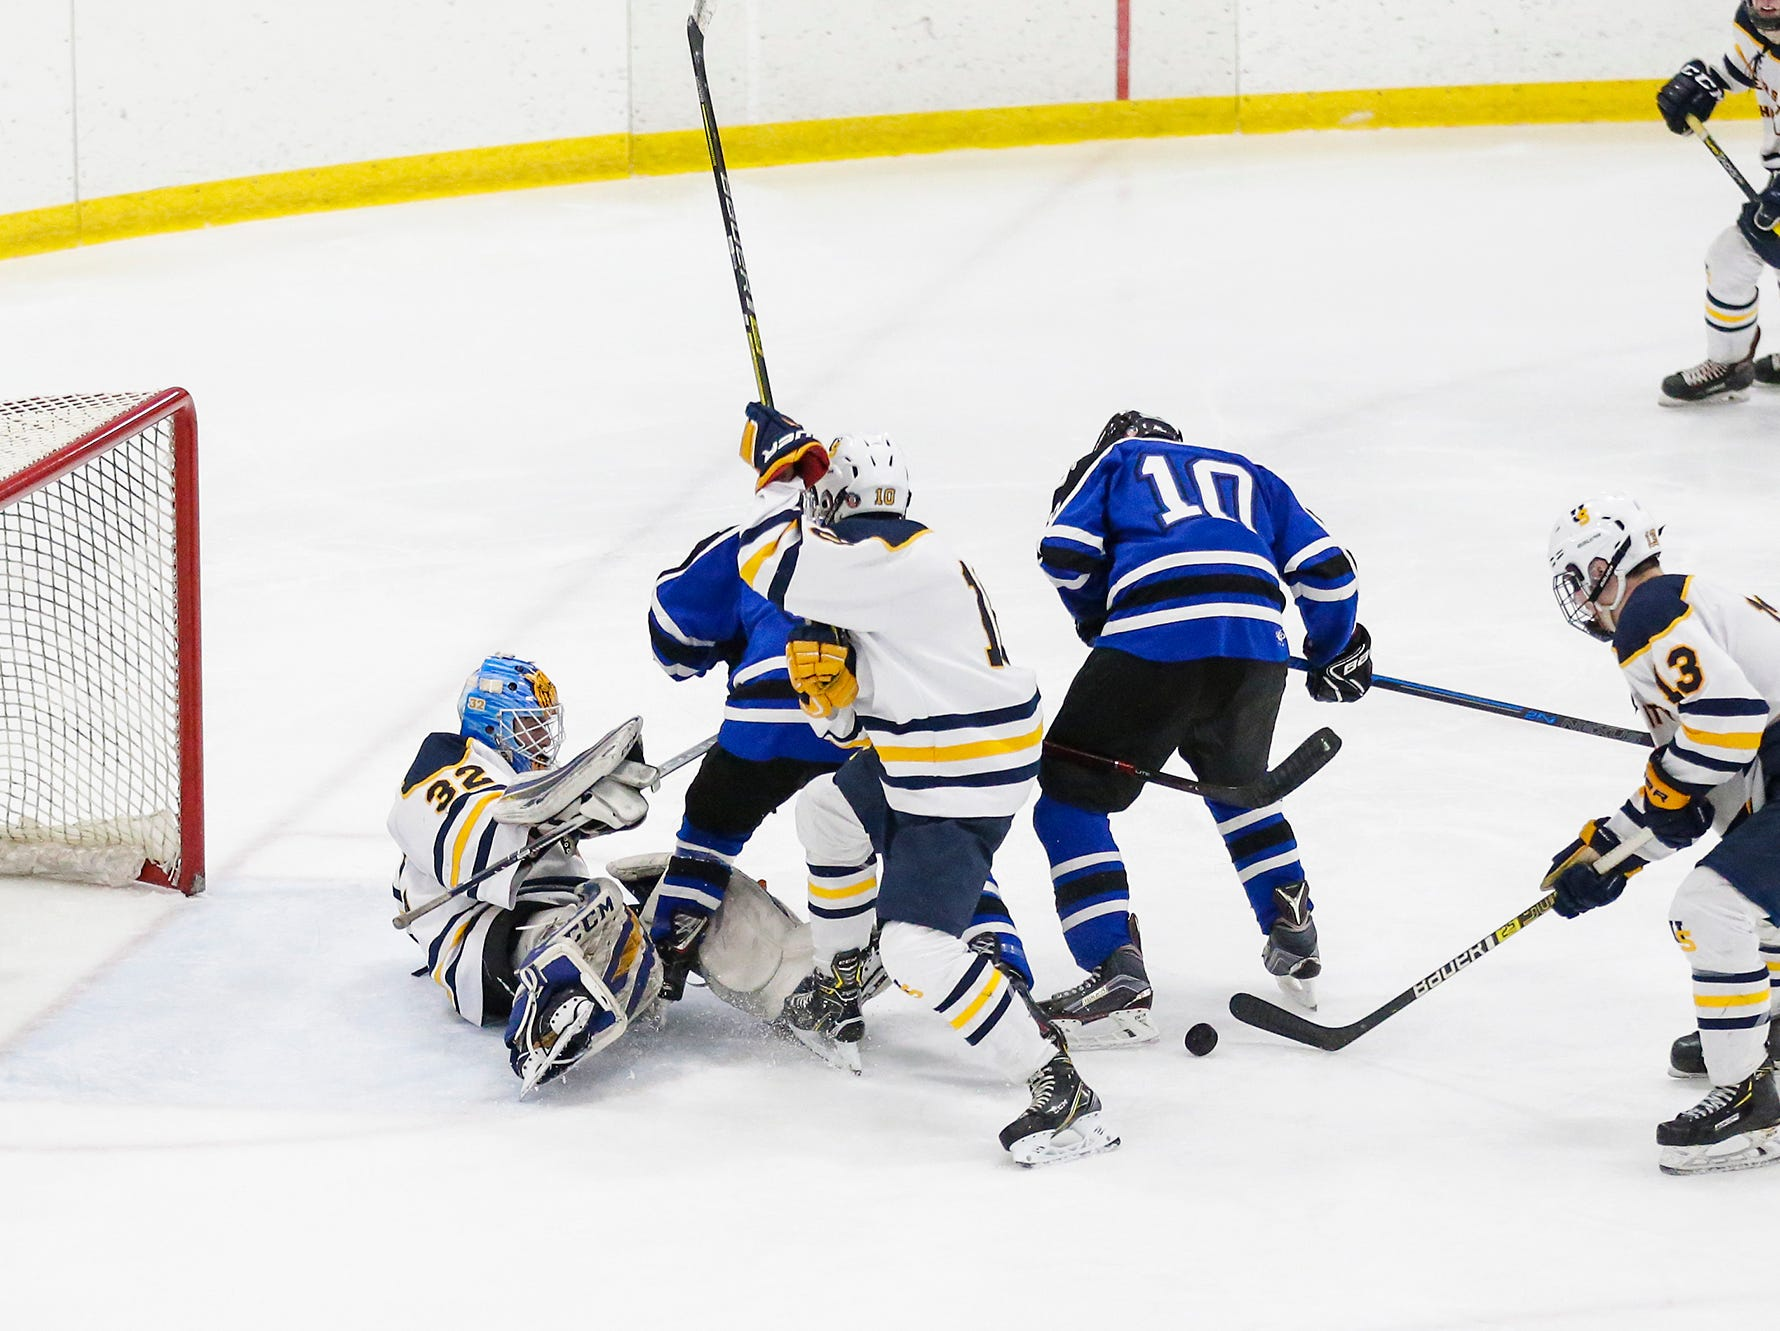 St. Mary's Springs boys co-op hockey's Zach Welsch (8) and Dayne Deanovich (10) fight for the puck with University School of Milwaukee's Patrick Kelly (32), Ethan Ford (10) and Robby Newton (13) Friday, February 22, 2019 during their WIAA sectional final game in Fond du Lac. University School won the game 6-1 and will advance to state. Doug Raflik/USA TODAY NETWORK-Wisconsin